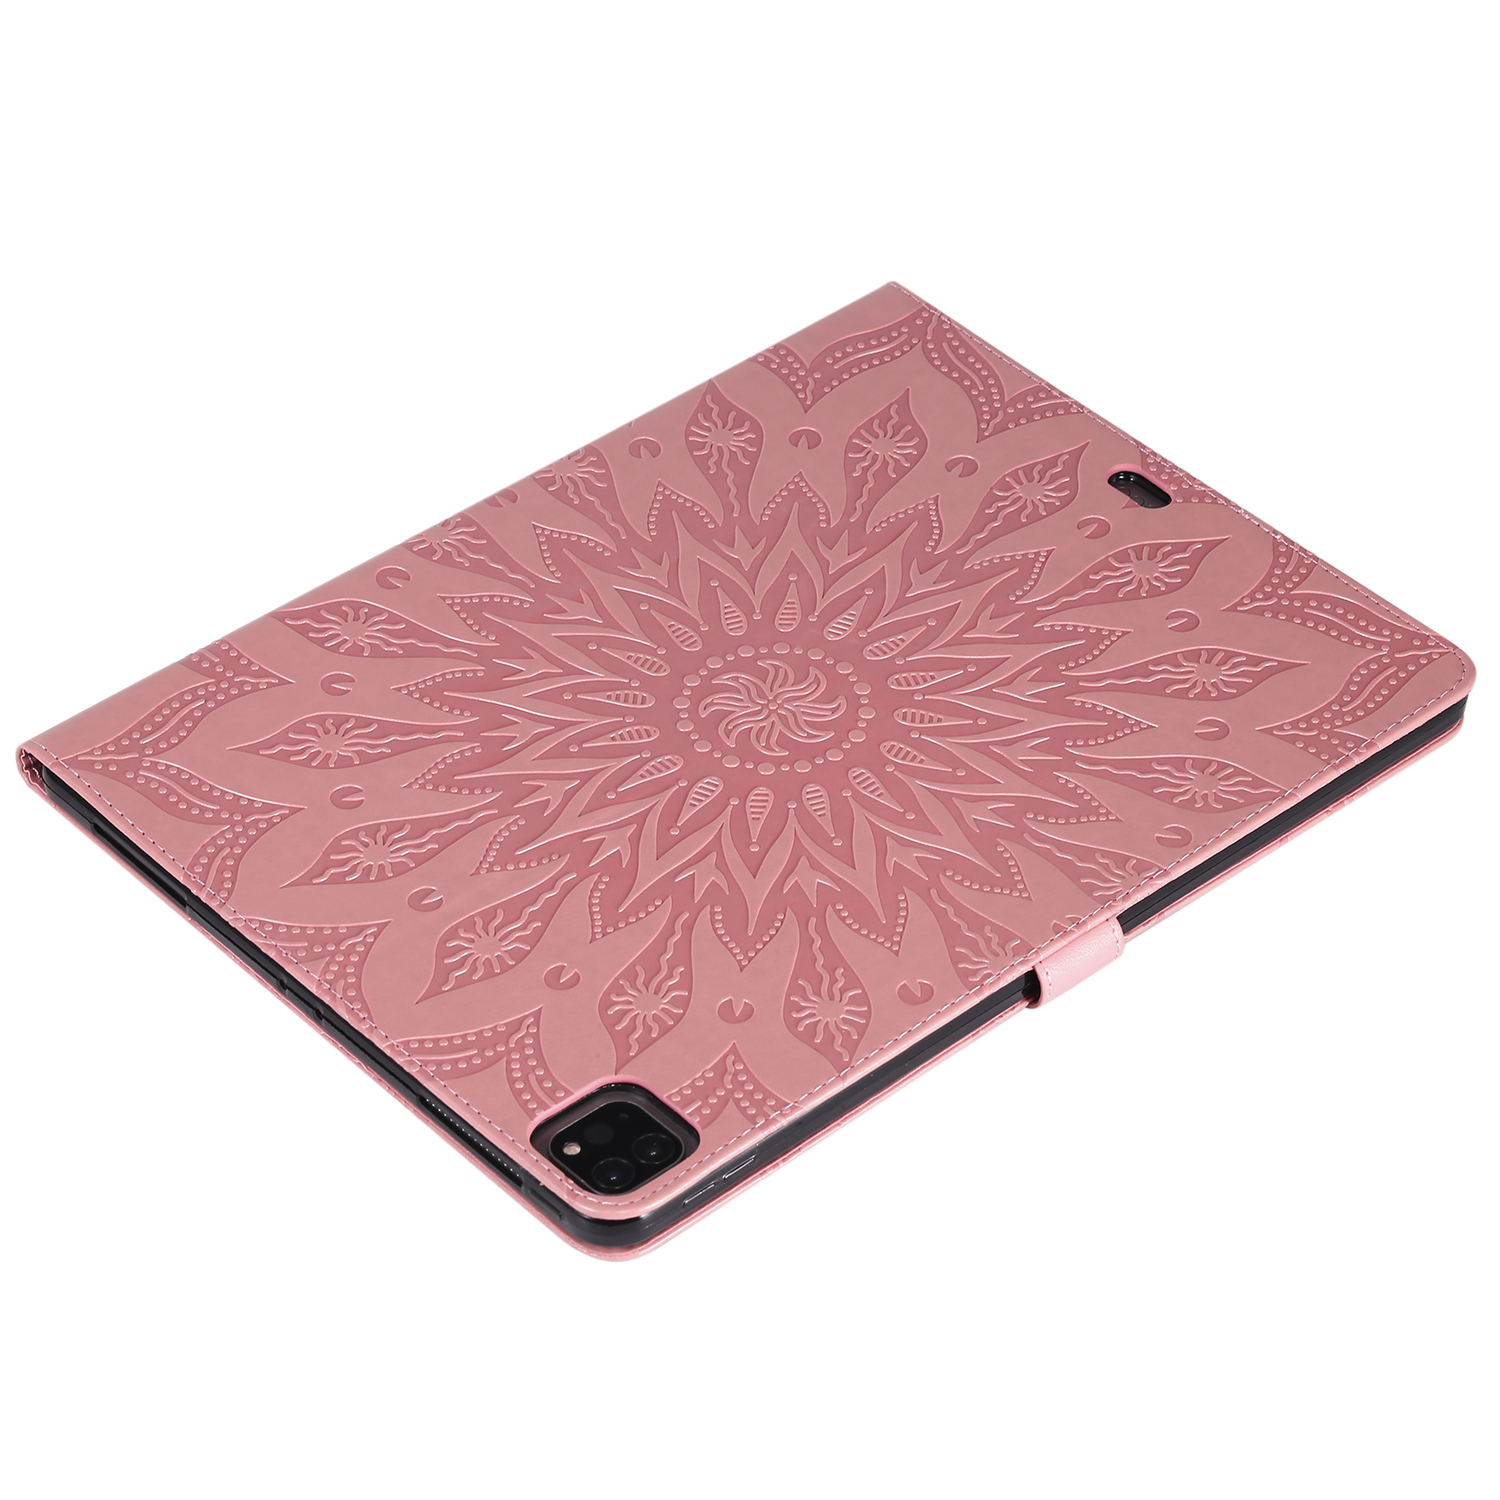 Flower 3D Embossed Cover for iPad Pro 12 9 Case 2020 Leather Protective Shell Skin for